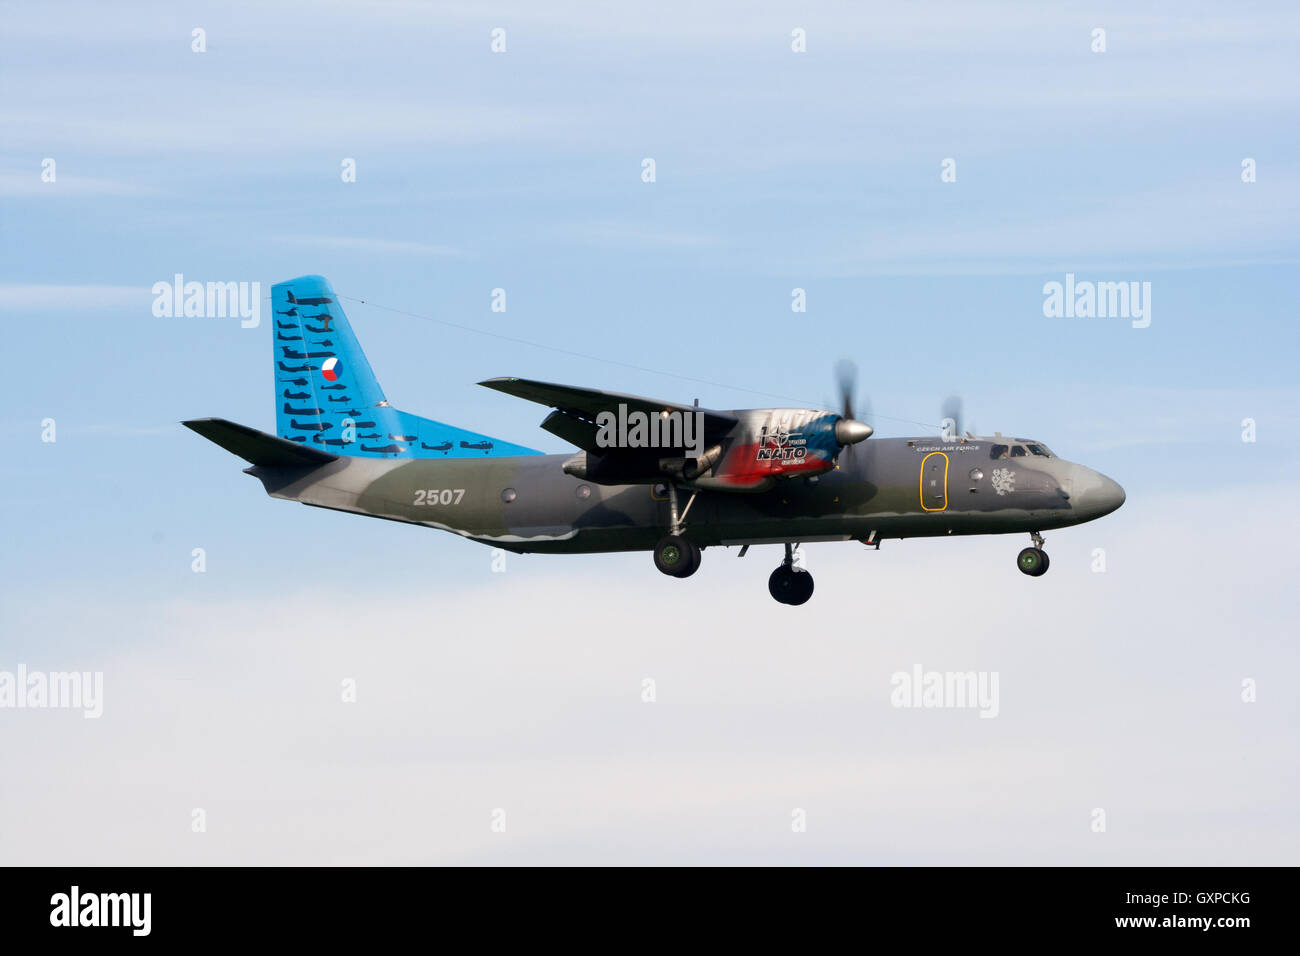 Special painted Czech Republic Air Force Antonov An-26 Curl transport plane - Stock Image